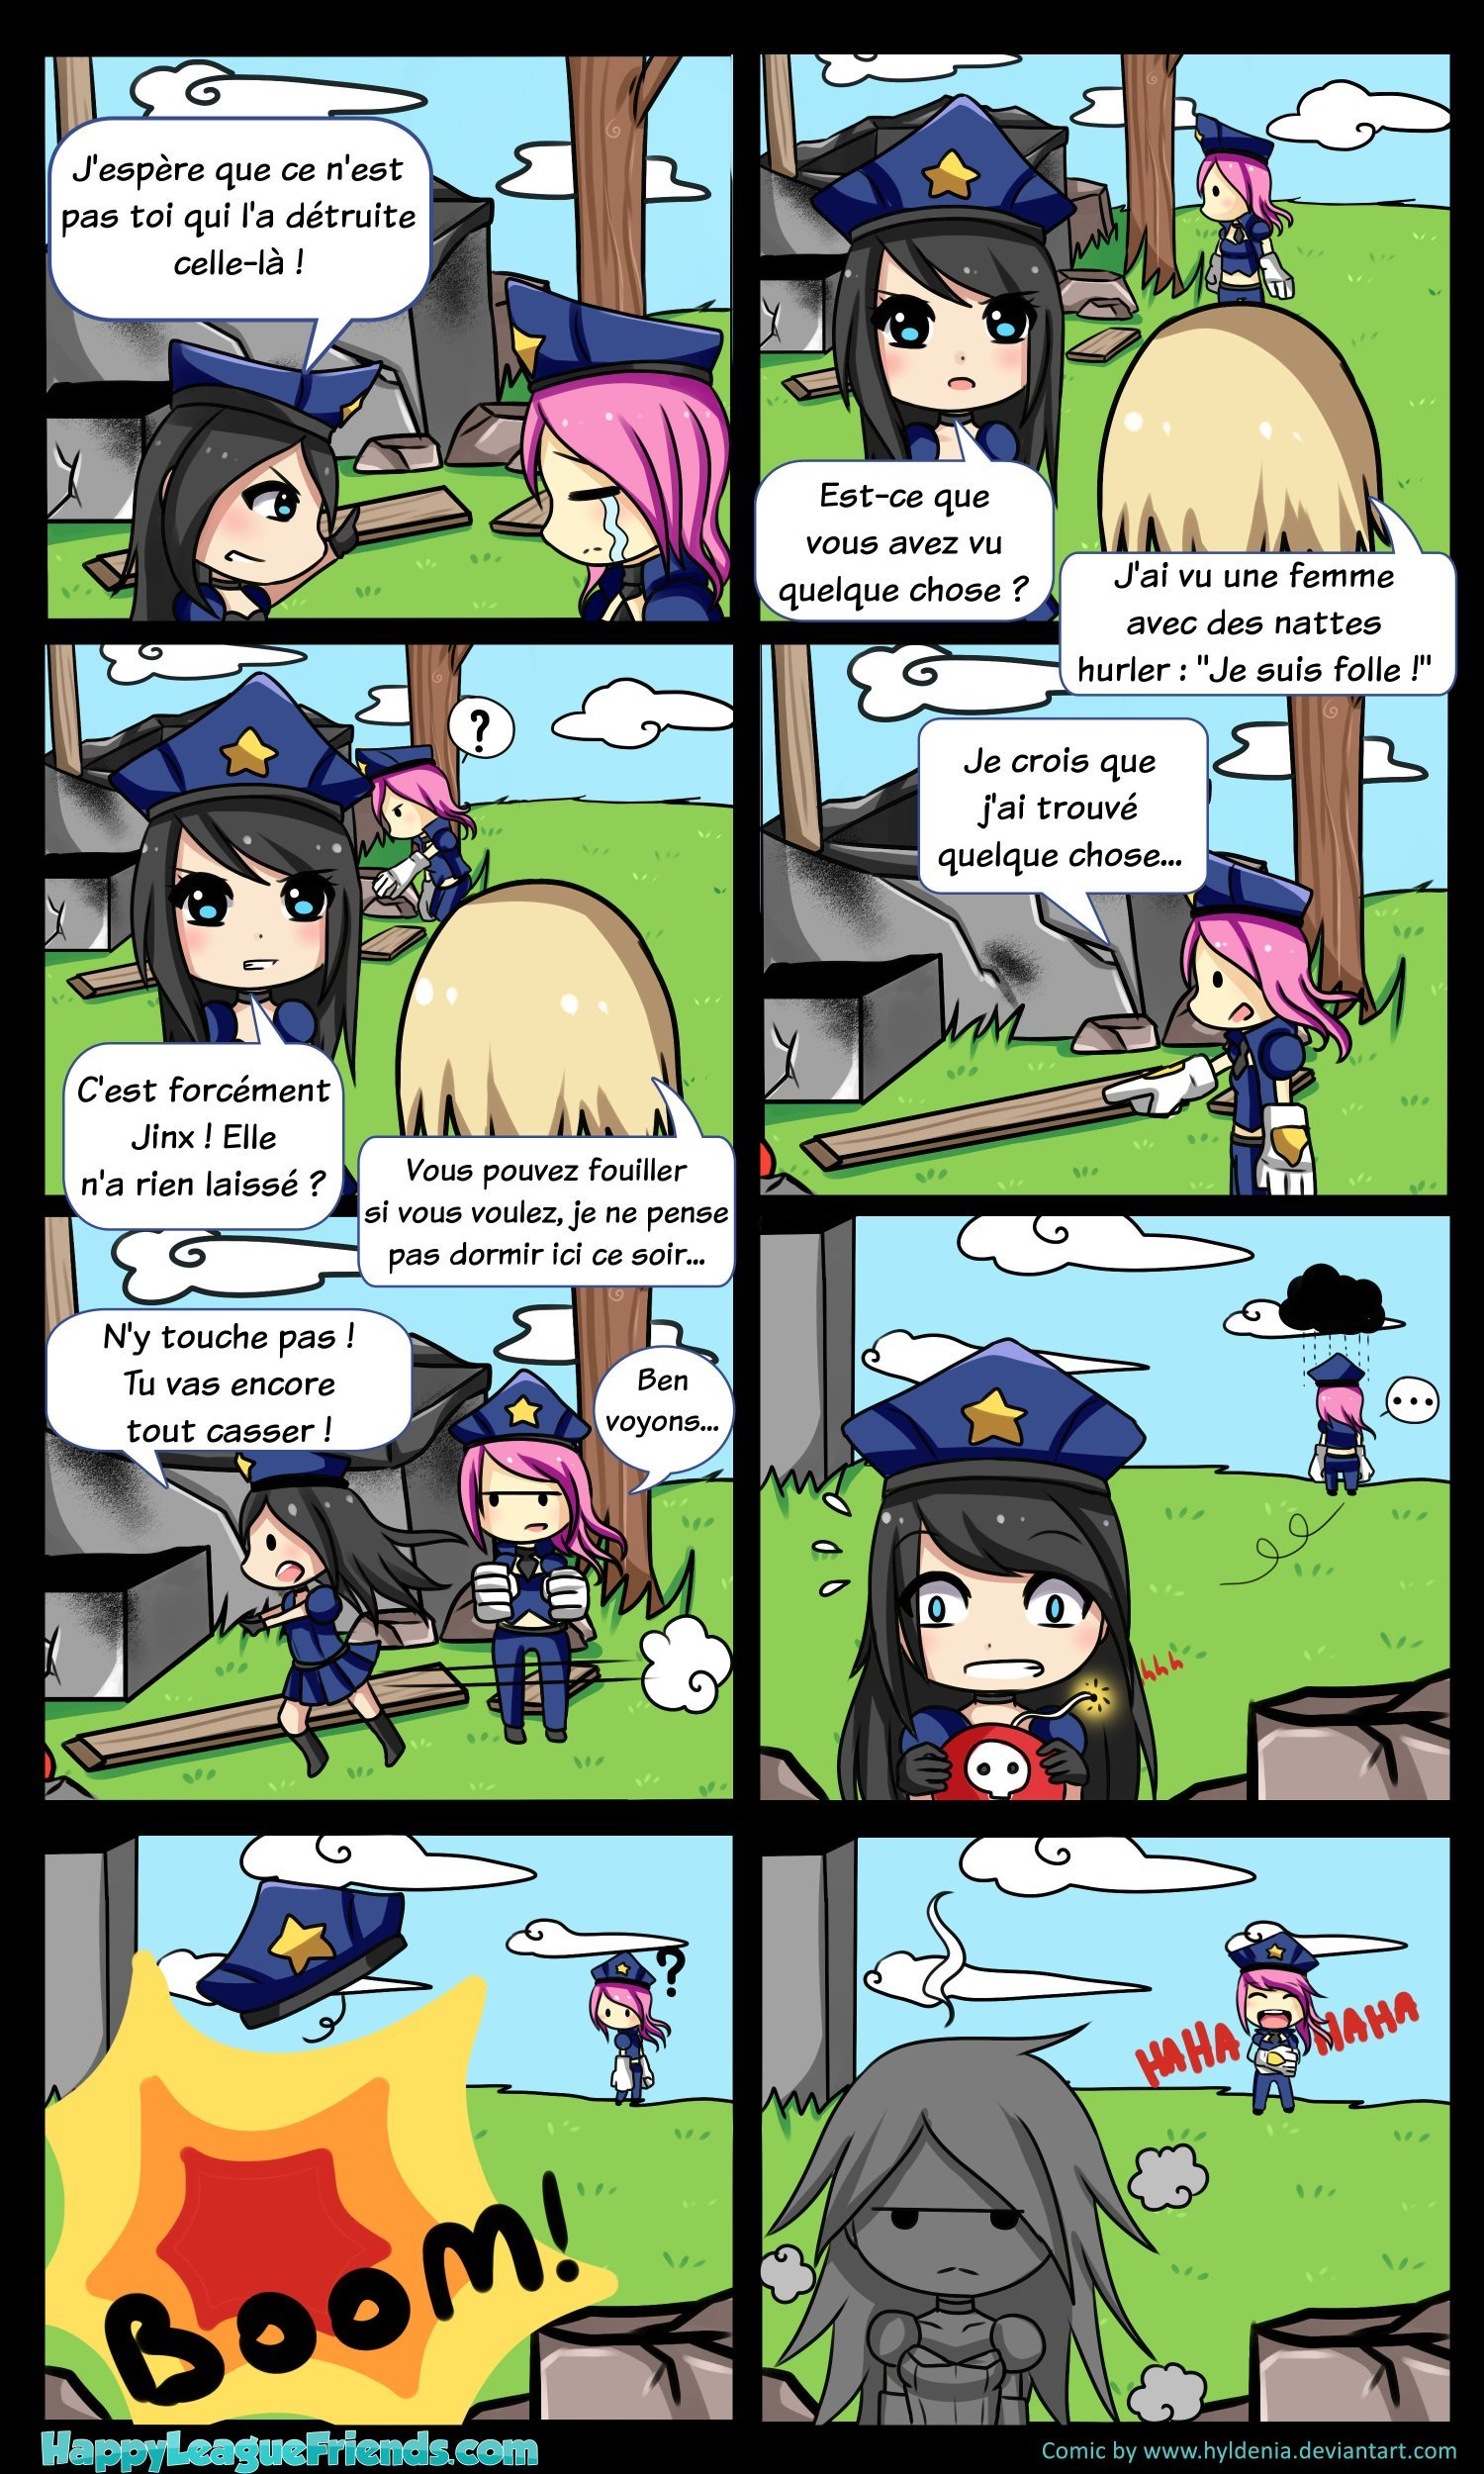 0014 - Lets catch Jinx Part 2 FR